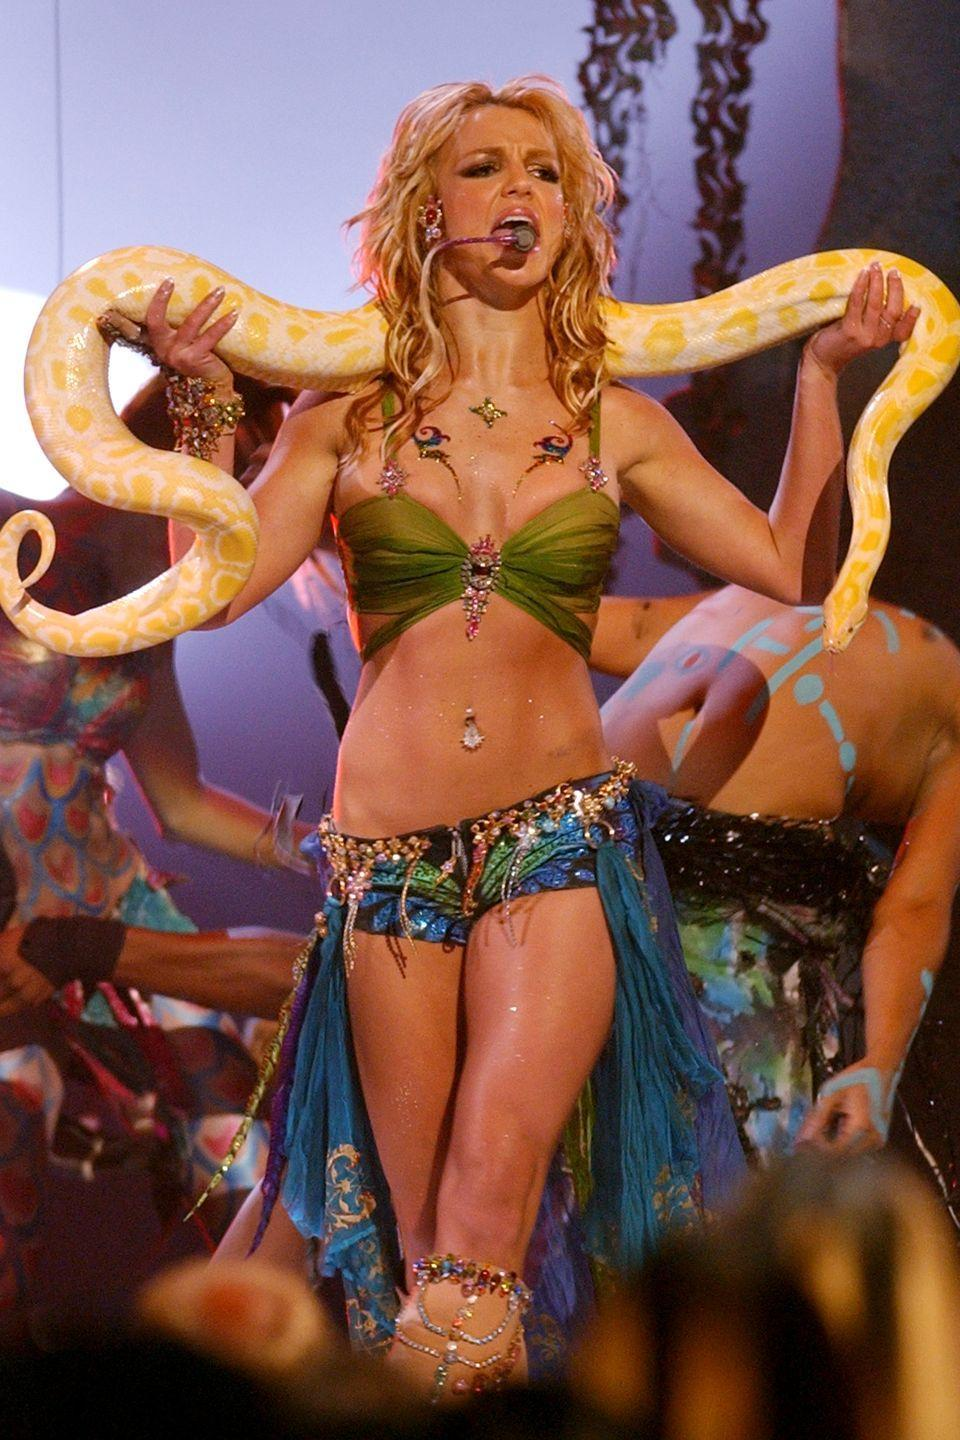 <p>The pop star never fails to slay in a belly-baring look, and has had a belly button ring since as far back as we can remember. From dangly jewels to simple studs, only Britney could make us love this accessory so much. </p>